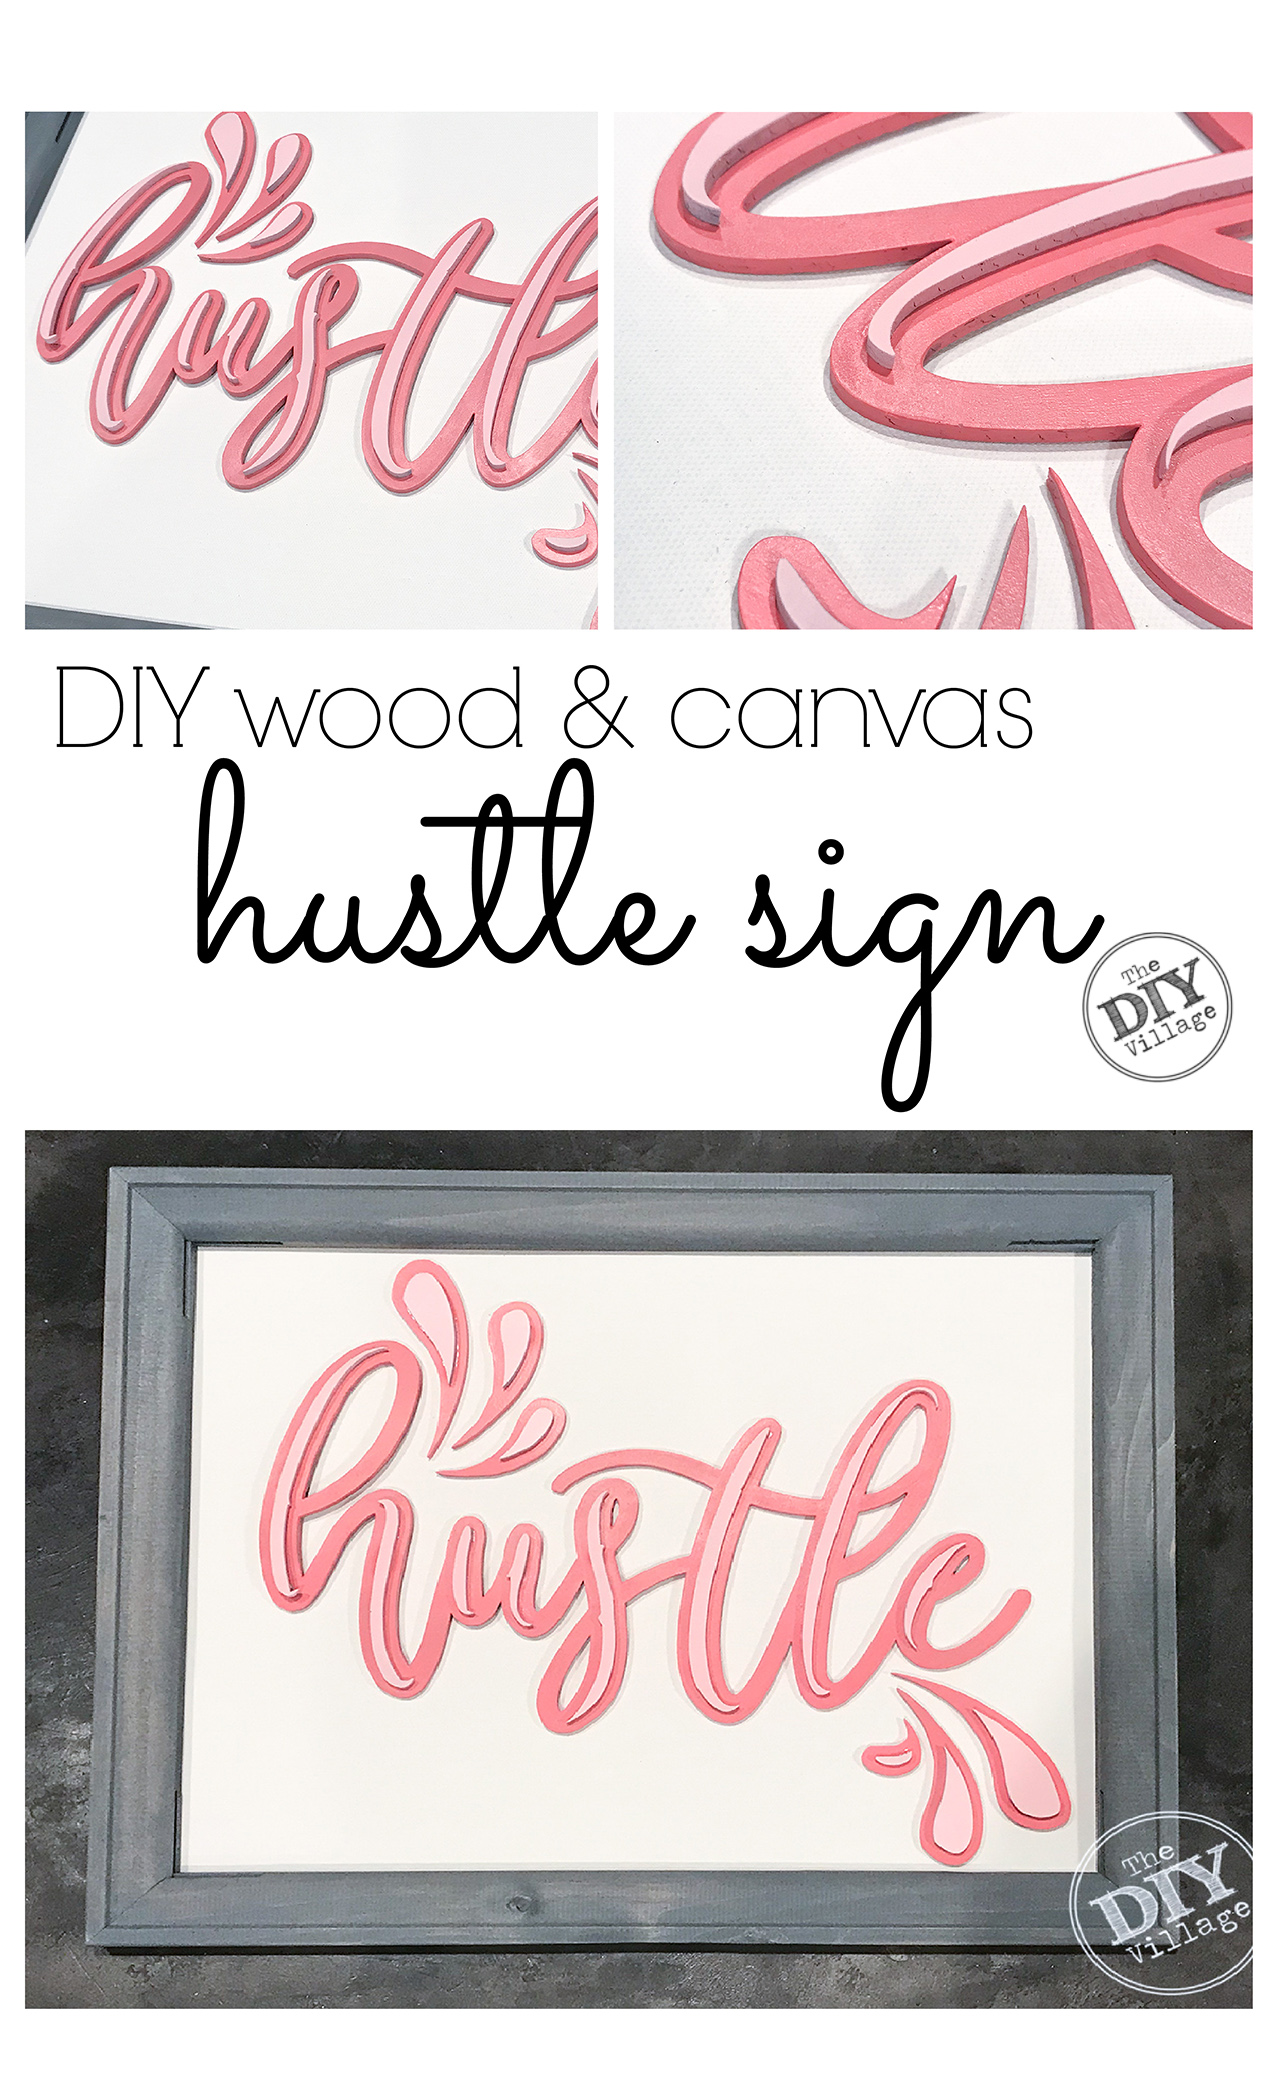 DIY project for under $20. Hustle sign with splash. Free for personal use SVG.